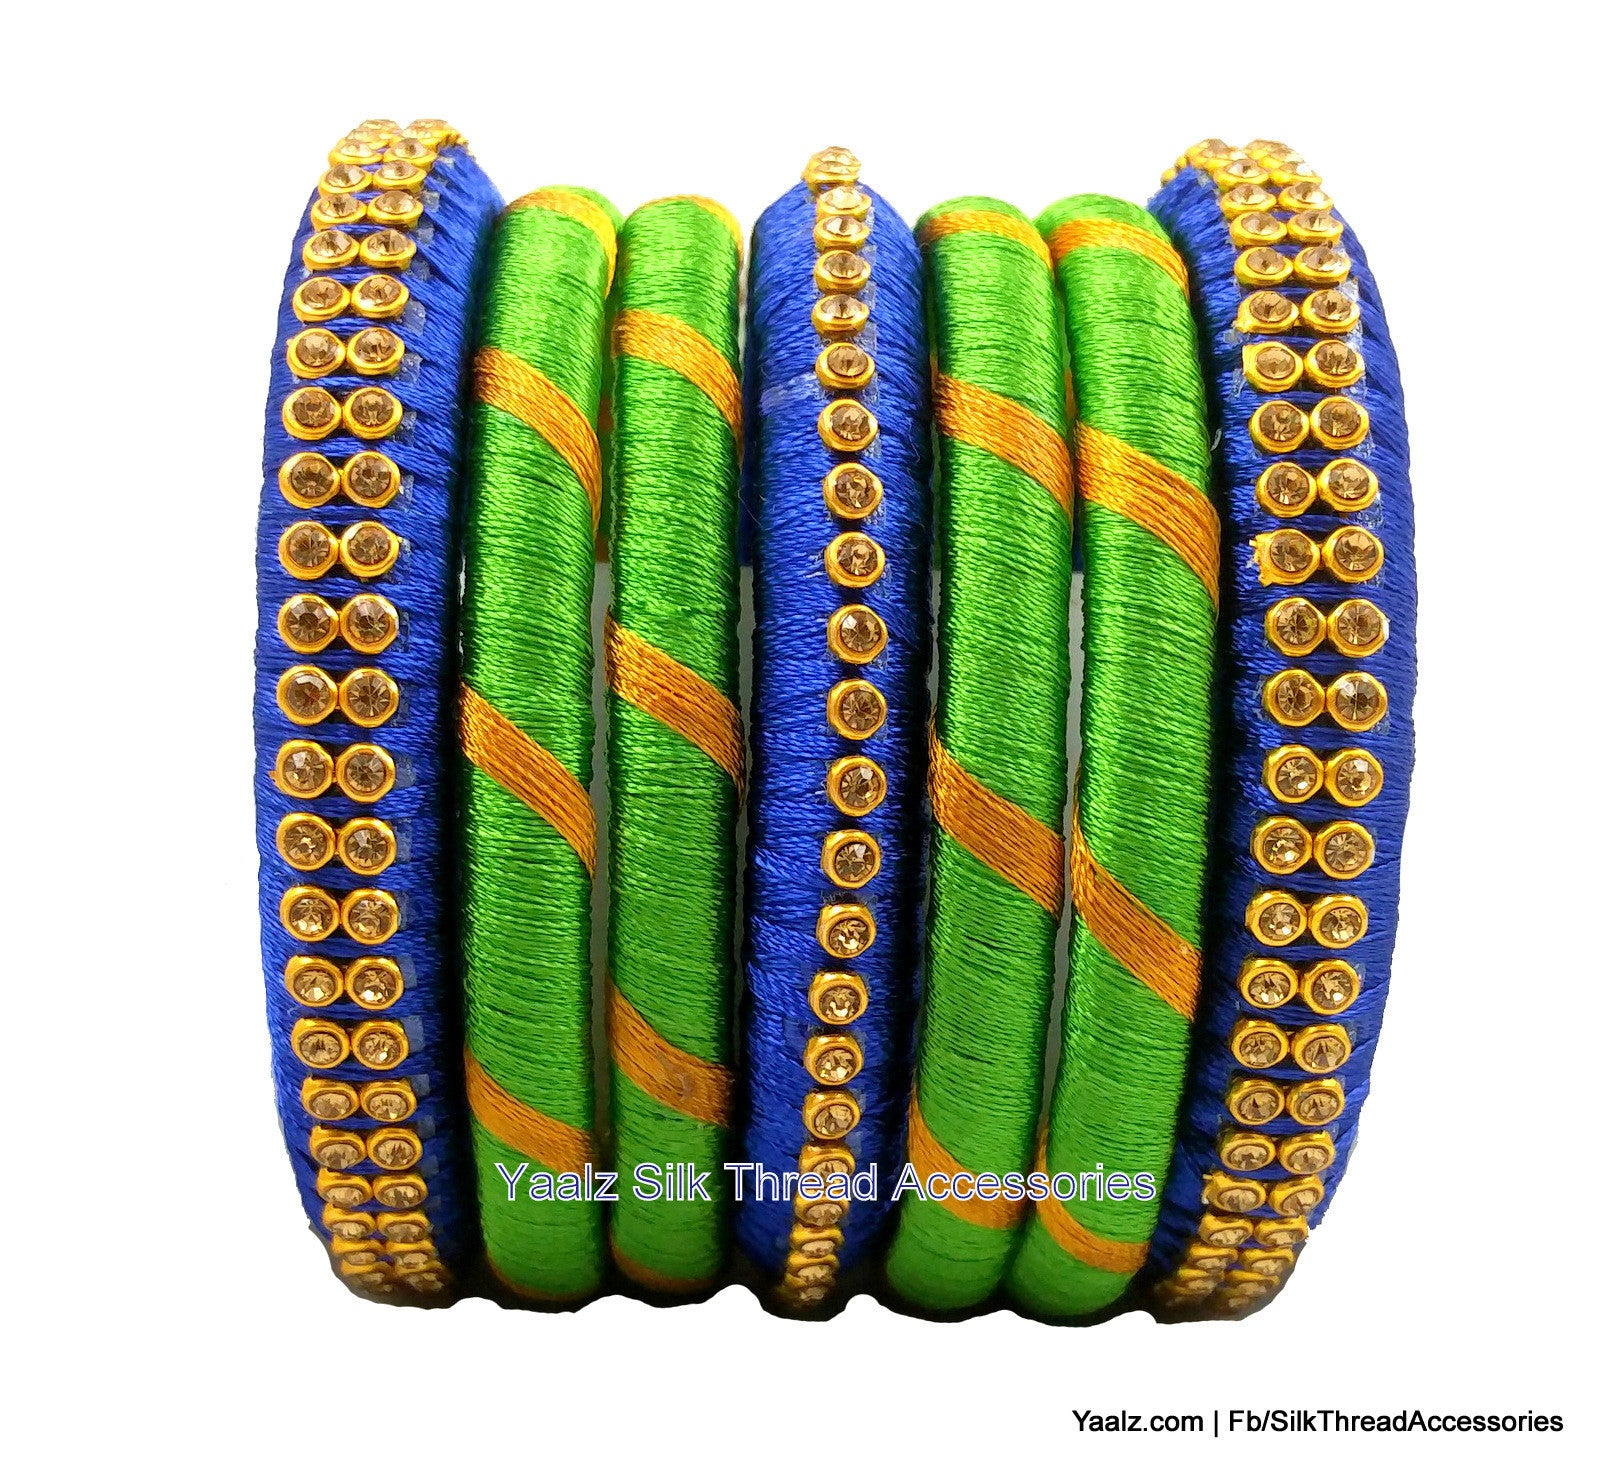 Yaalz Assorted Bangles Set in Royal Blue And Parrot Green Colors